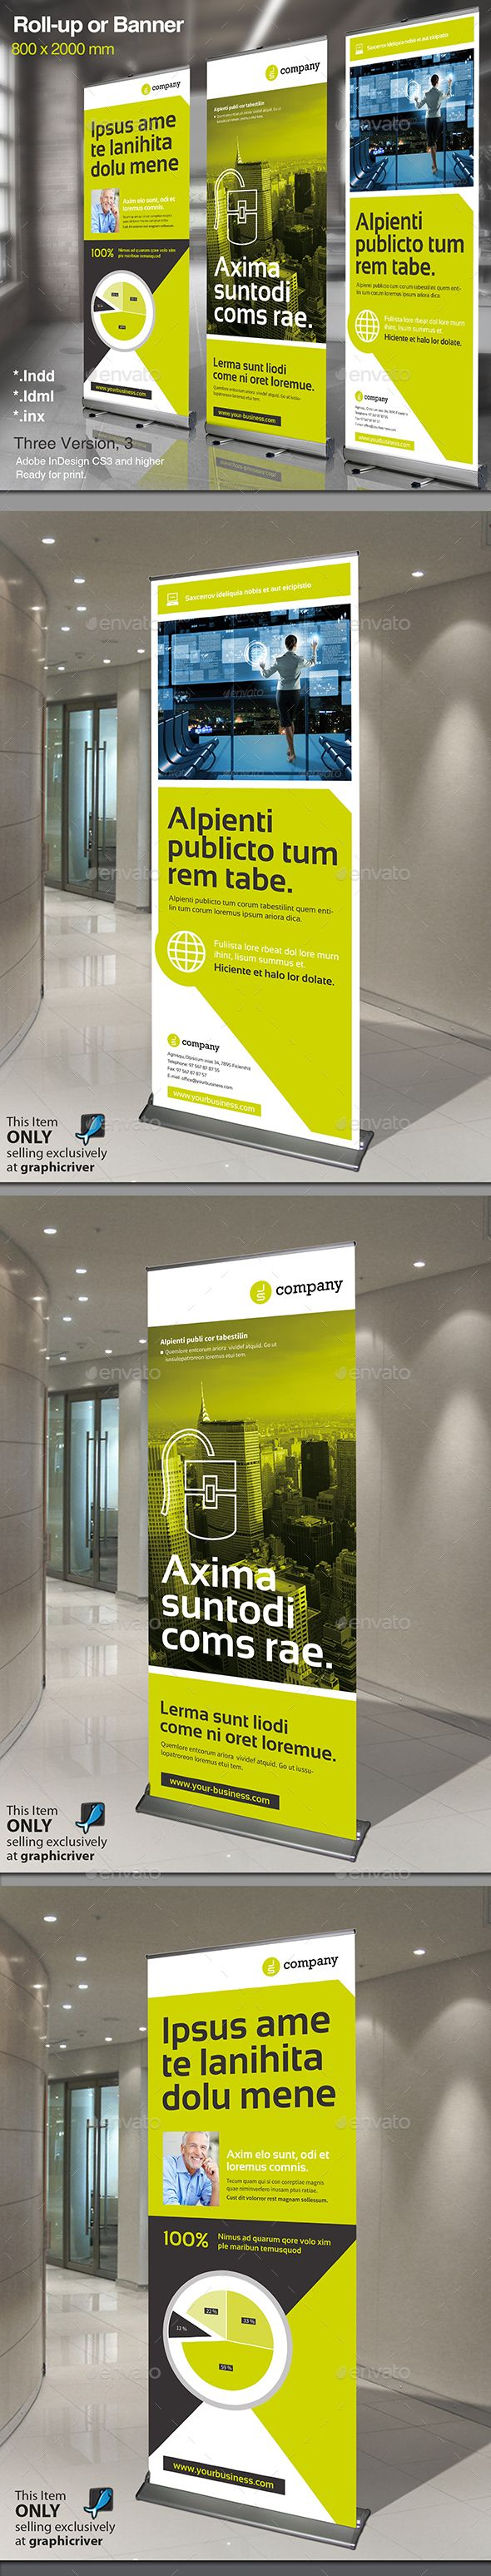 Corporate Banner or Rollup Template INDD, Vector AI #design Download: http://graphicriver.net/item/corporate-banner-or-rollup-vol-3/14460446?ref=ksioks